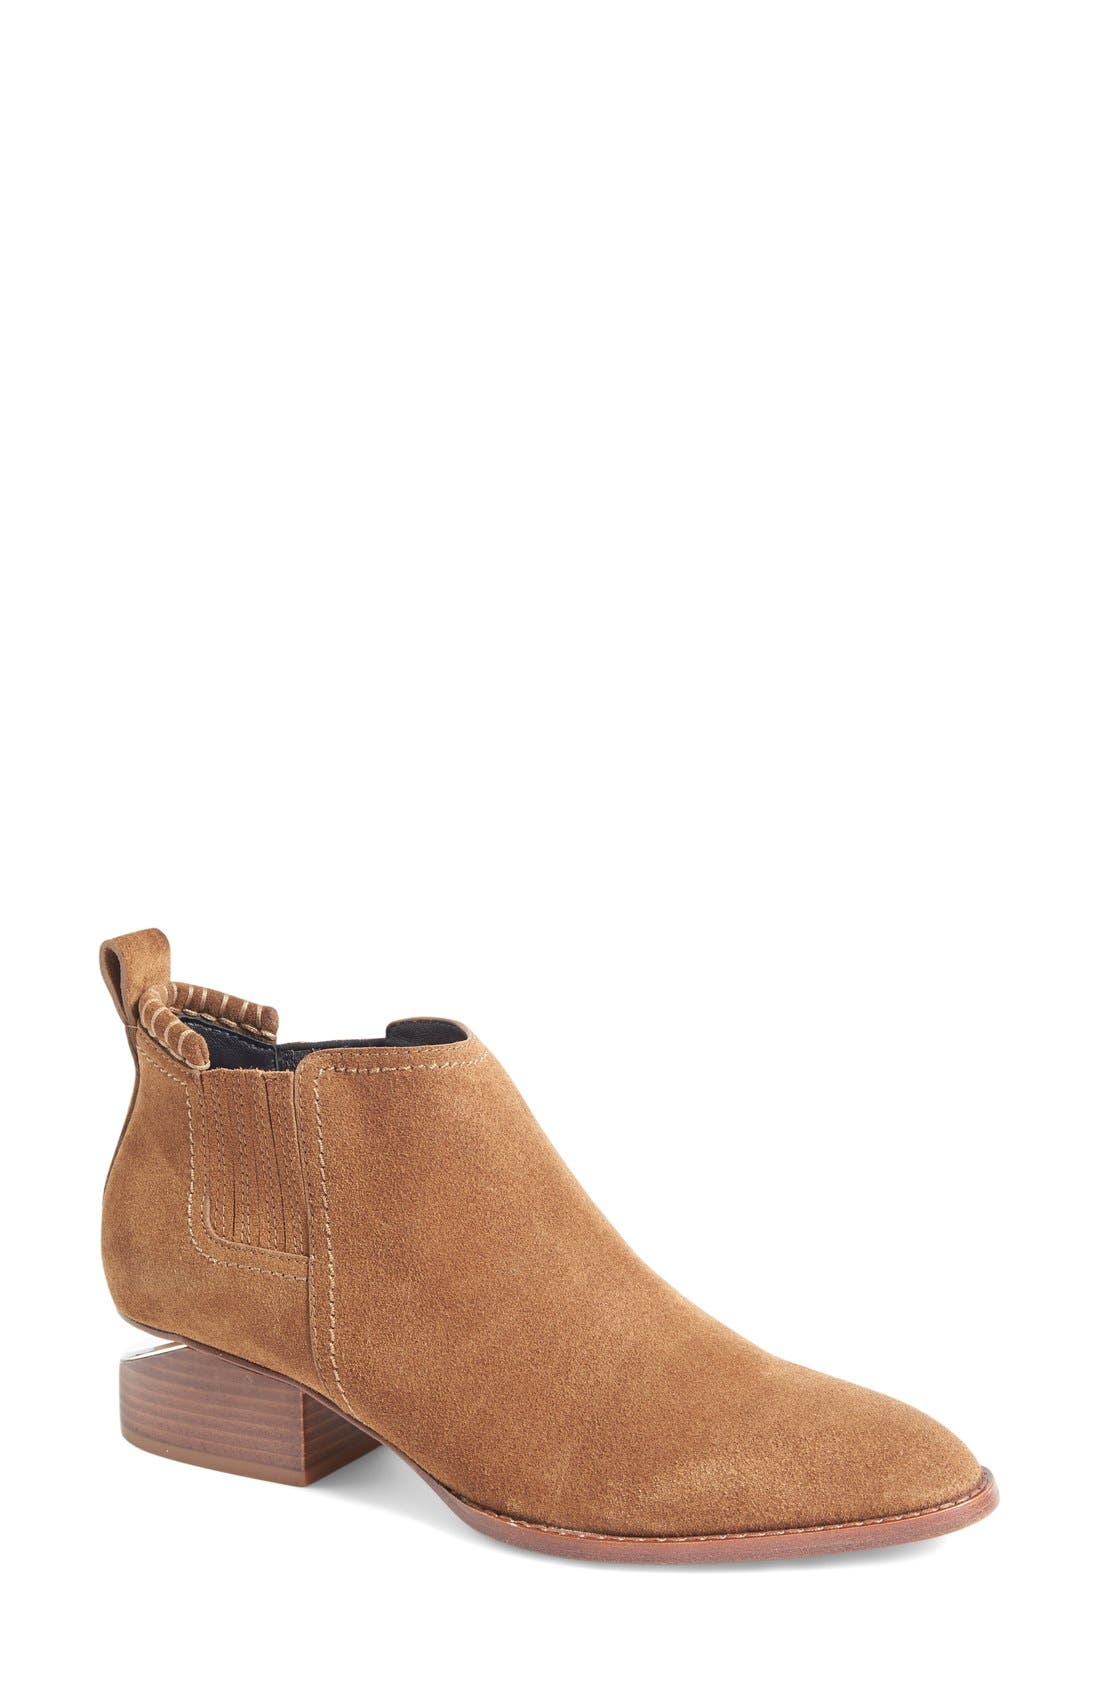 Kori Chelsea Boot,                             Main thumbnail 1, color,                             Dark Truffle